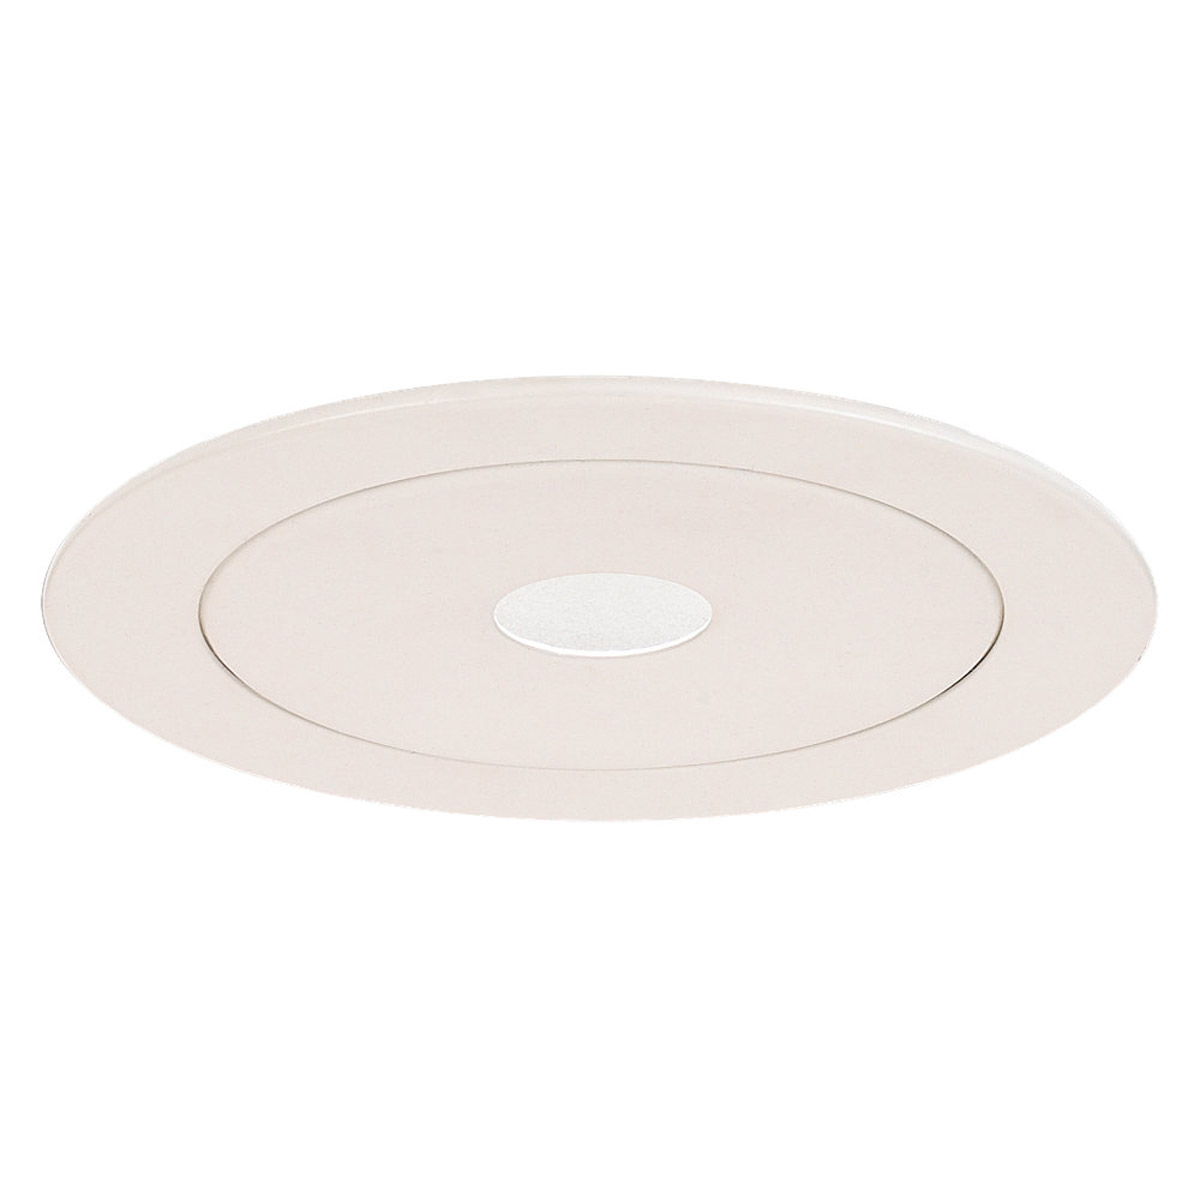 Sea Gull Lighting Signature Recessed Trim Only in White 1238AT-15